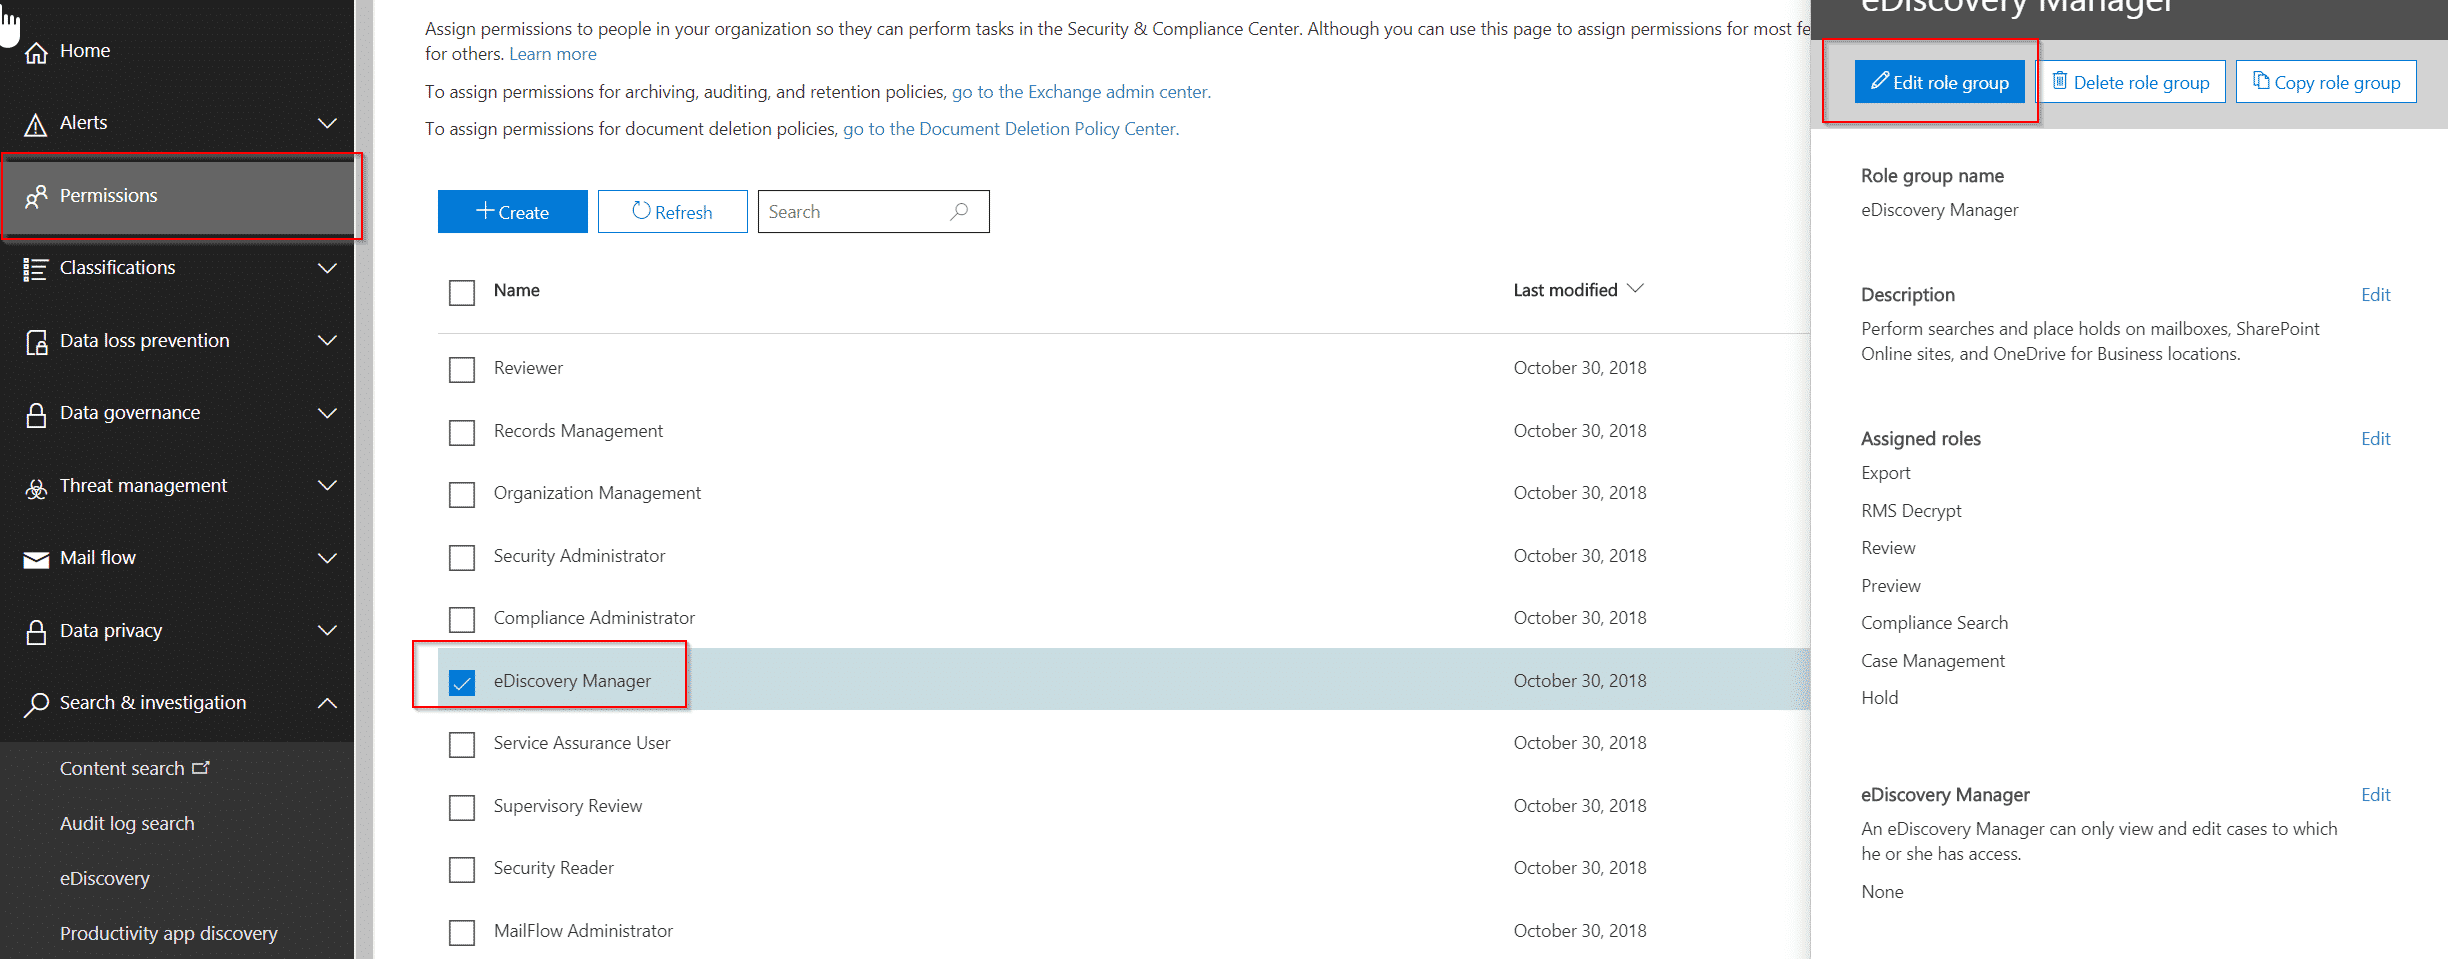 FIX: To preview search results, please ask your Compliance